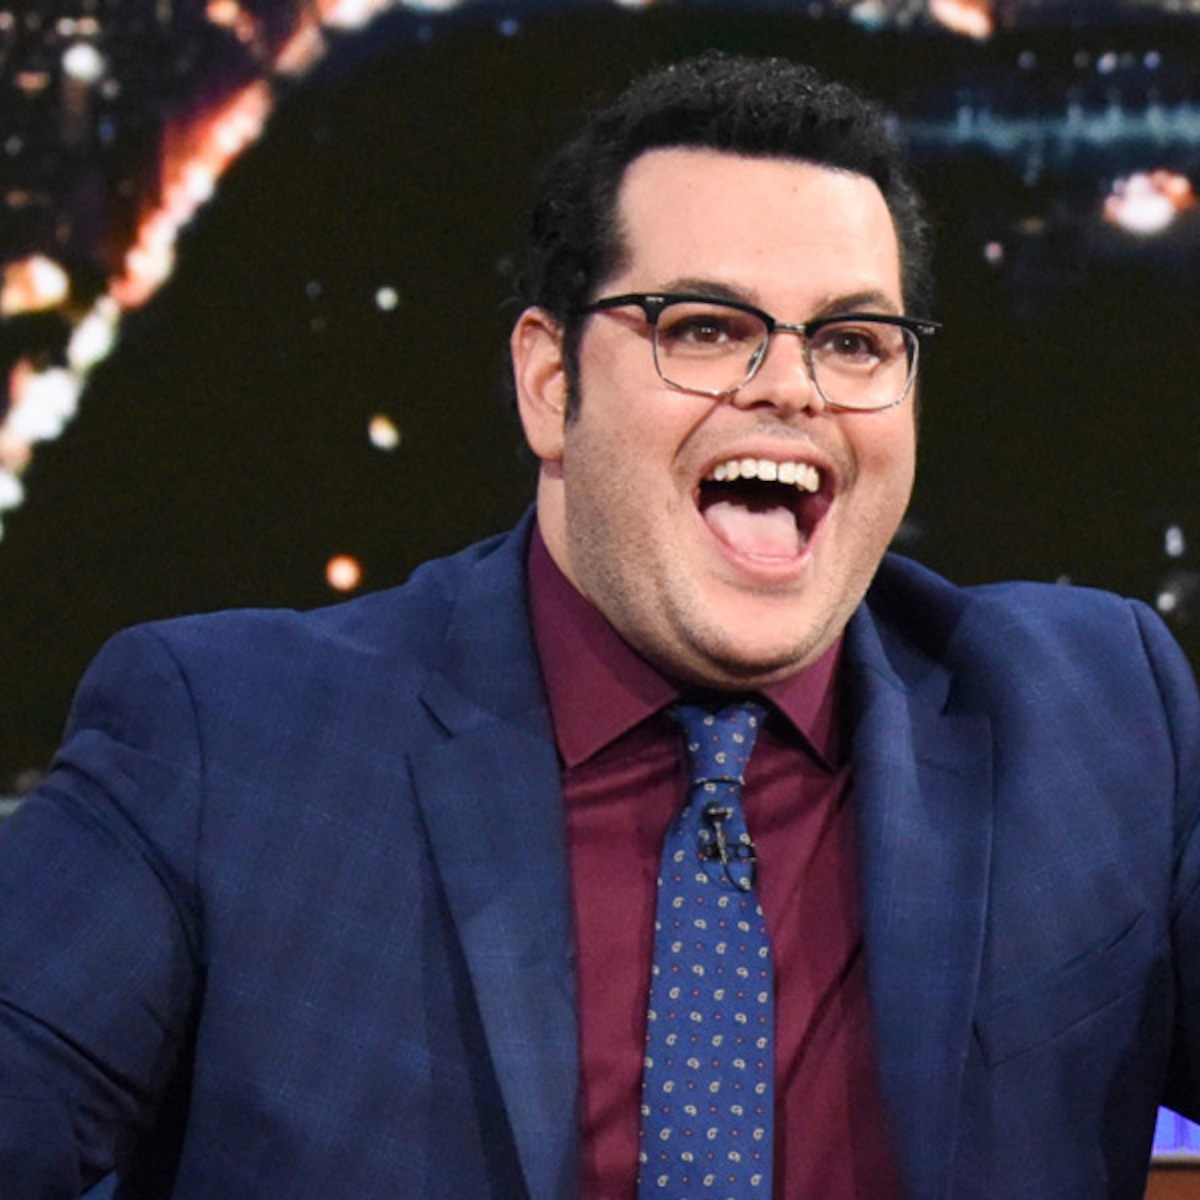 Josh Gad Can T Stop Talking Like Olaf E Online Uk Gadding with ghouls was a book written by gilderoy lockhart, part of his collected works. josh gad can t stop talking like olaf